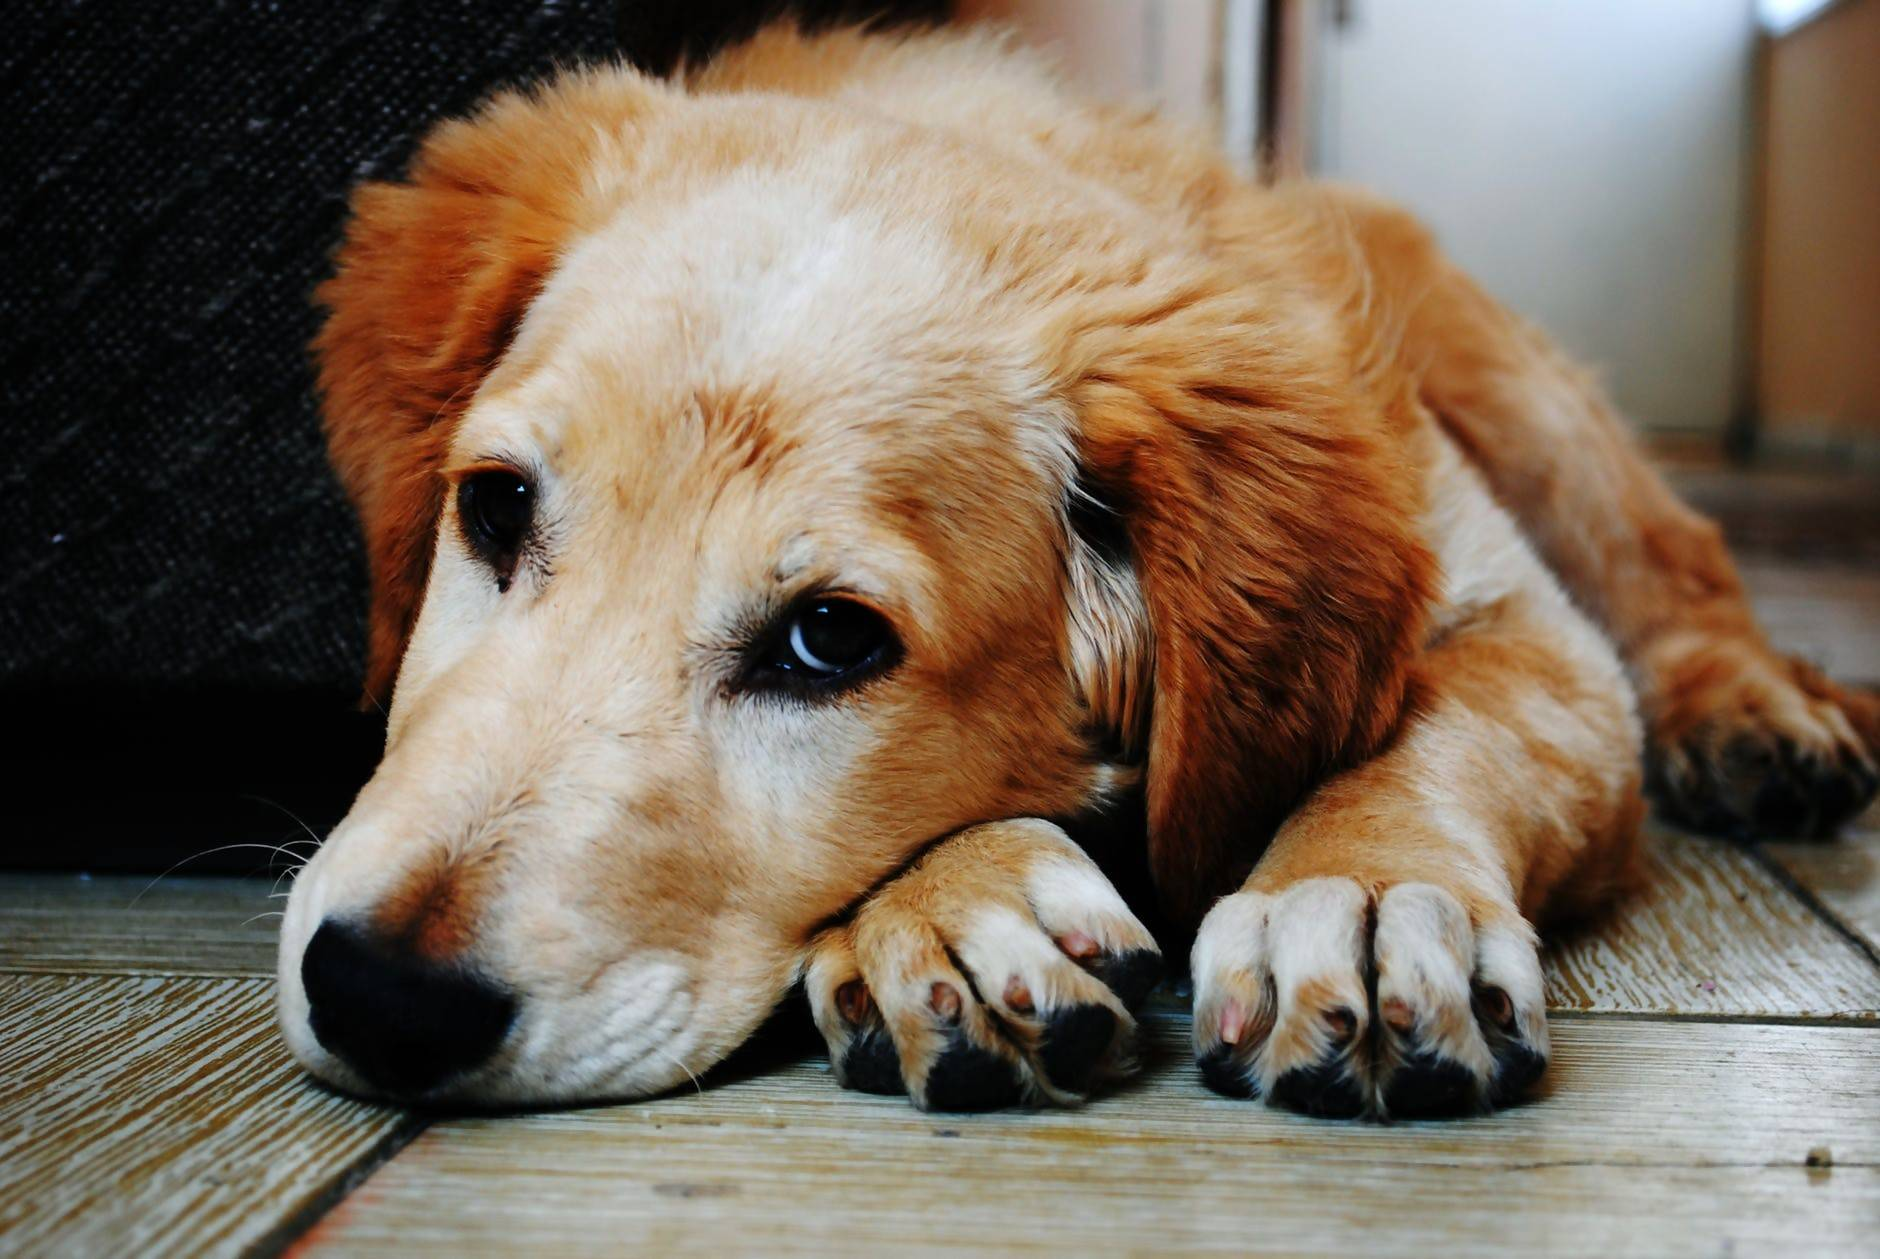 A Golden Retriever feeling cold on the floor in winter